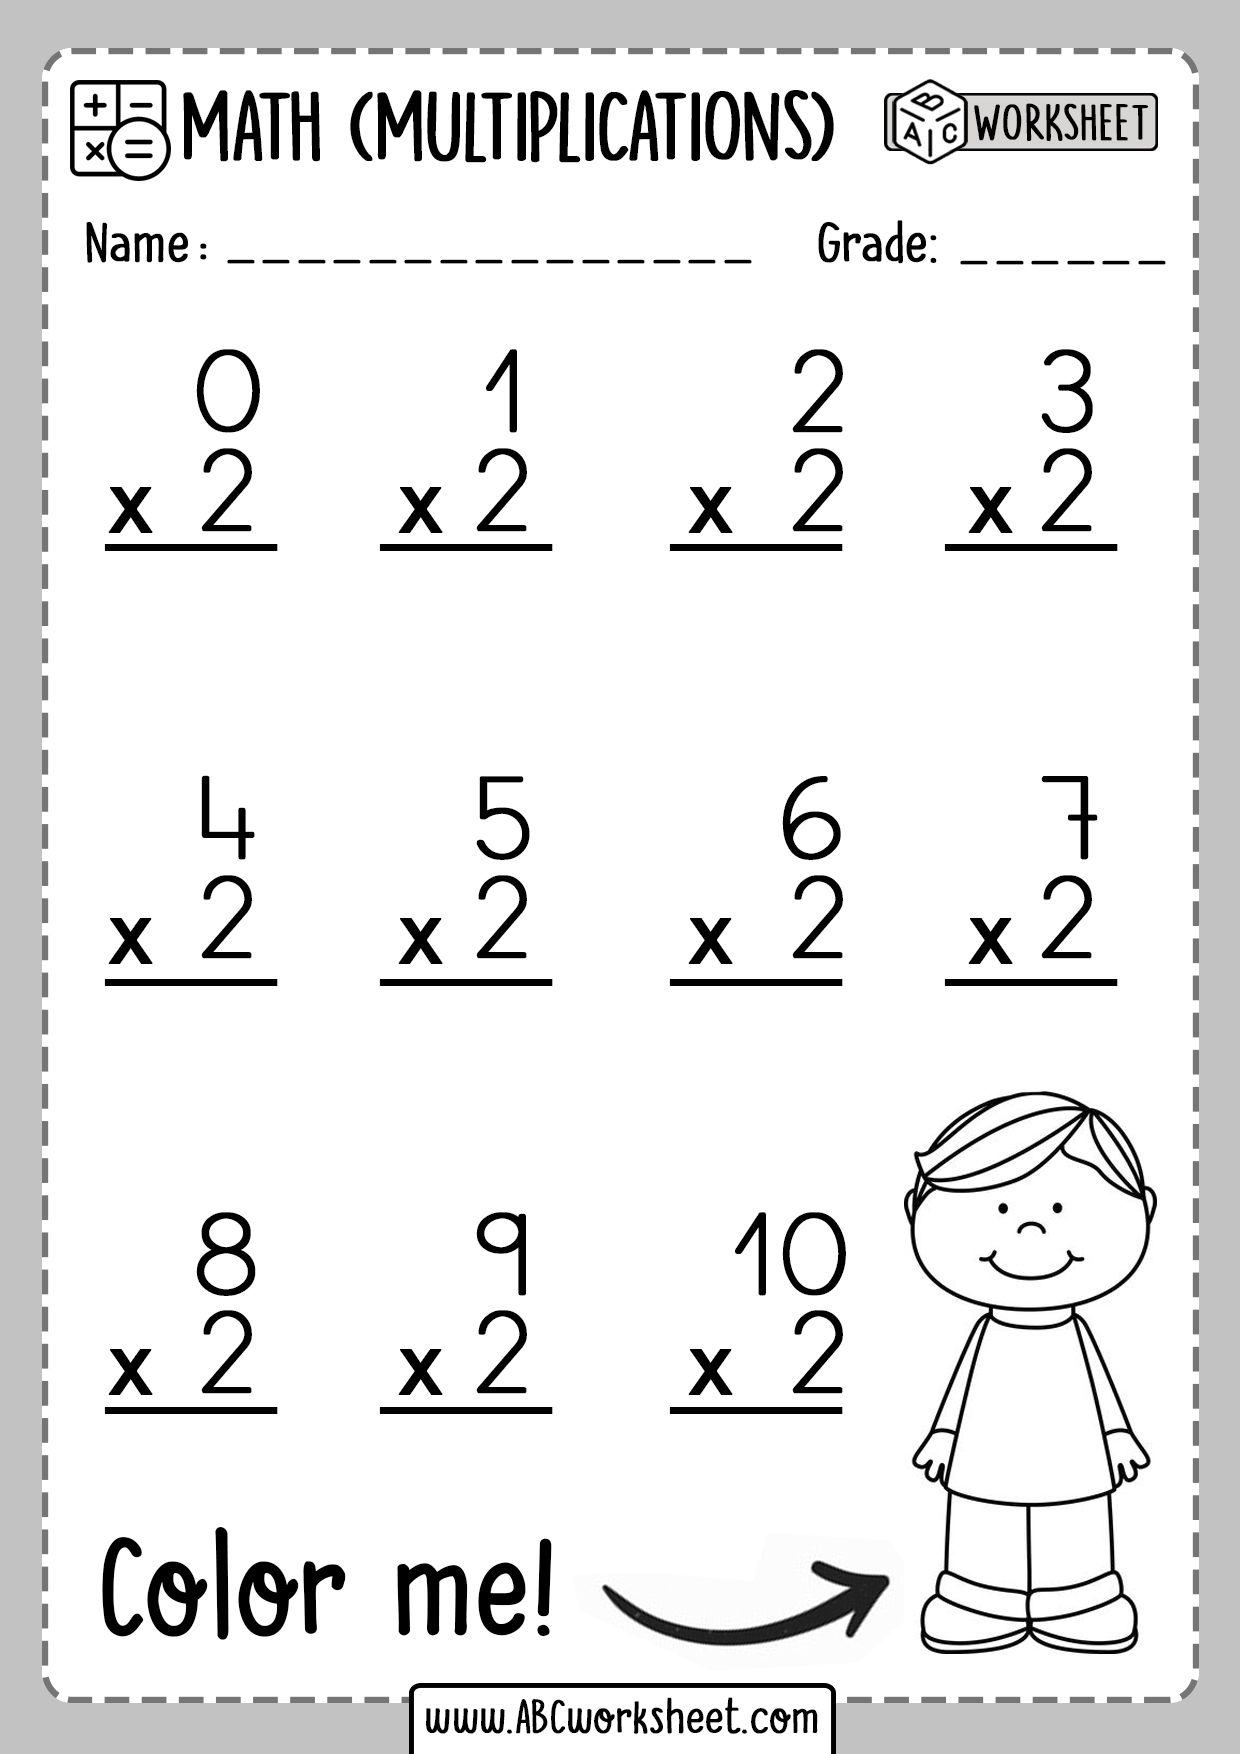 Printable Multiplication Tables Worksheet